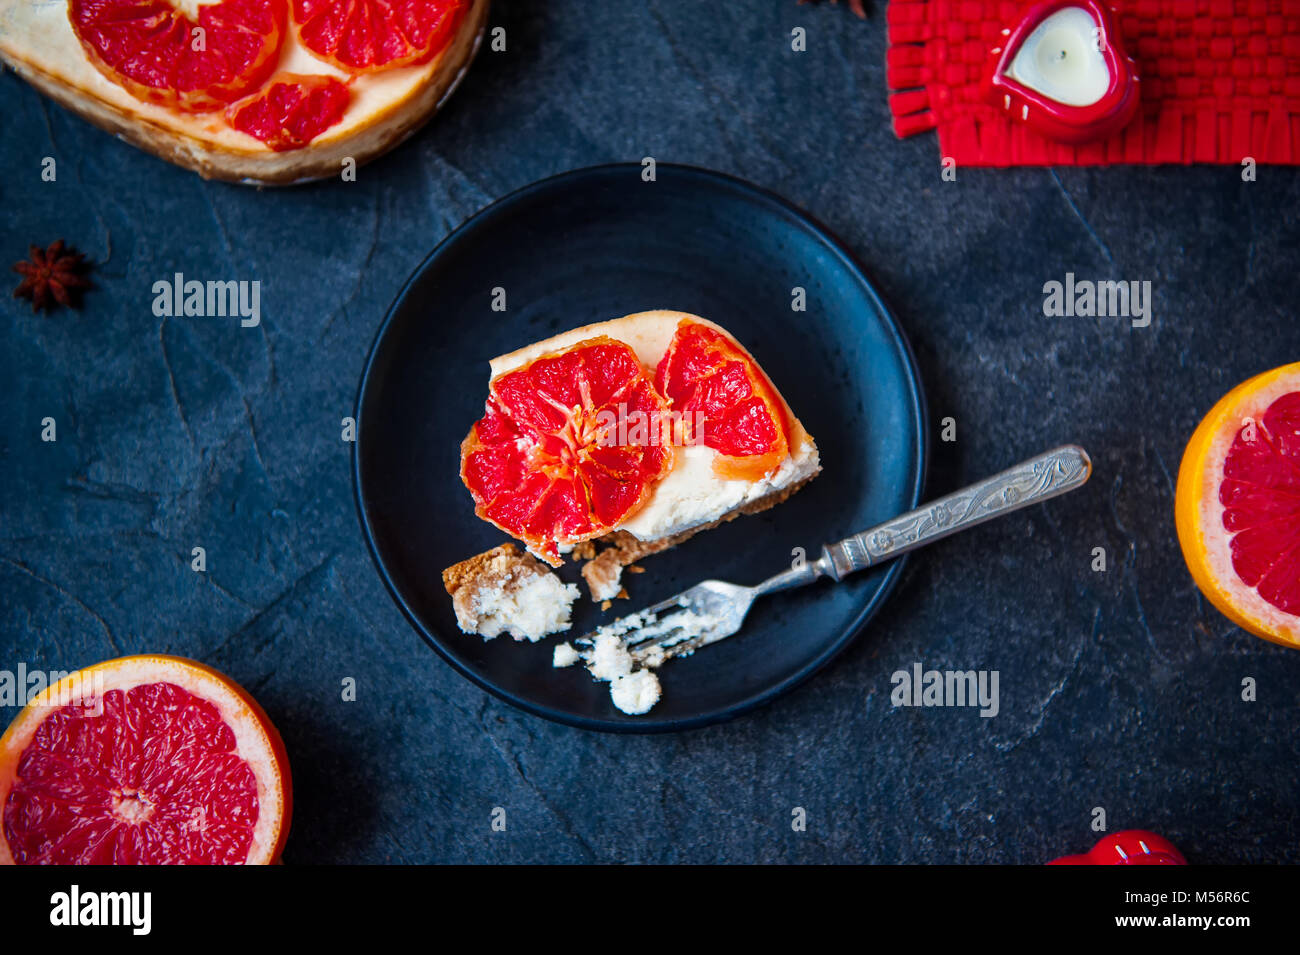 Top view plate with piece of baked cheesecake with red grapefruit slices and vintage fork on the black stone background - Stock Image